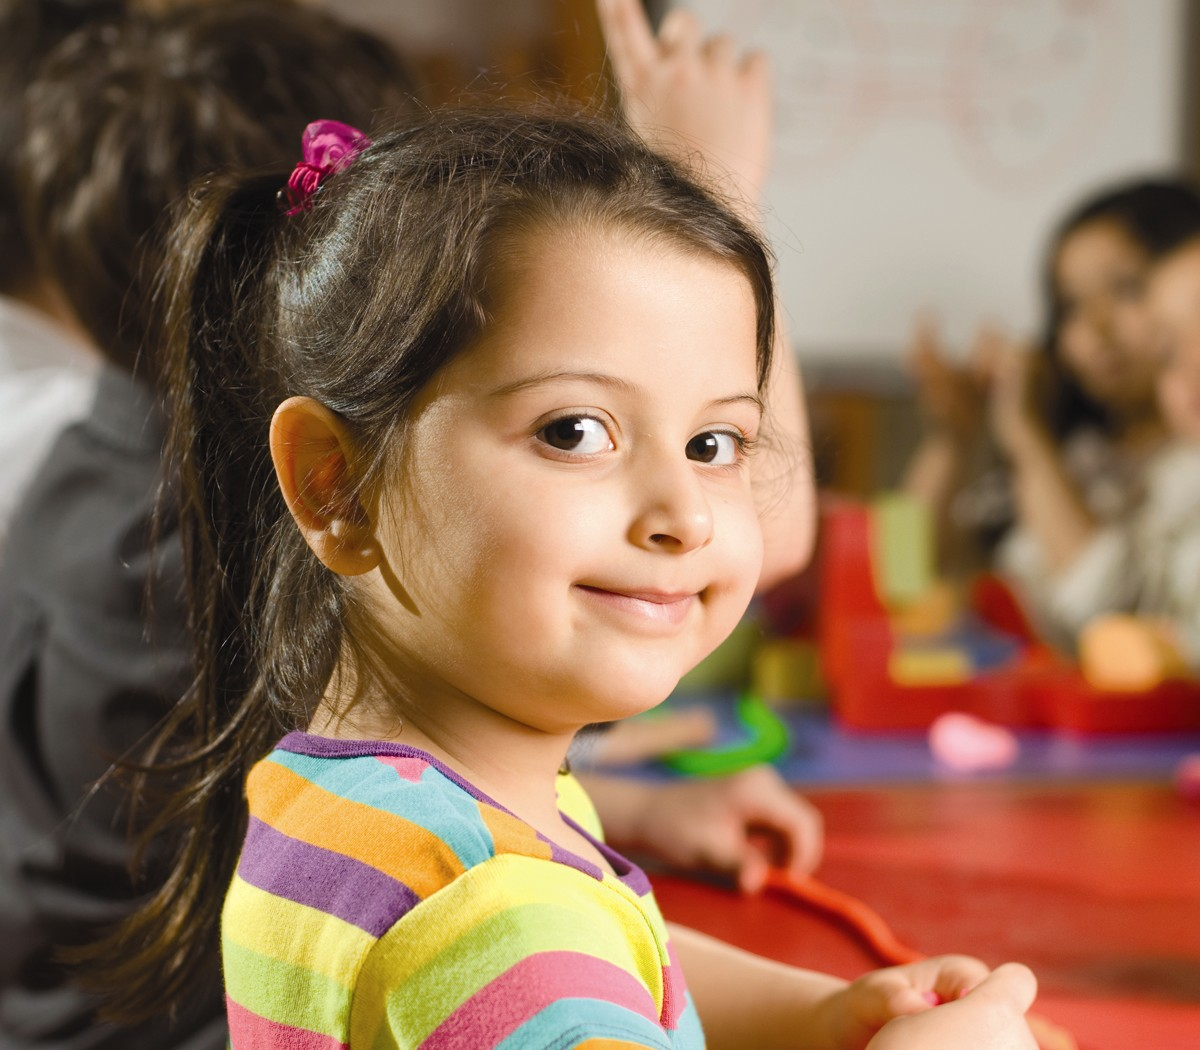 young smiling girl in child care center - Small Children Images